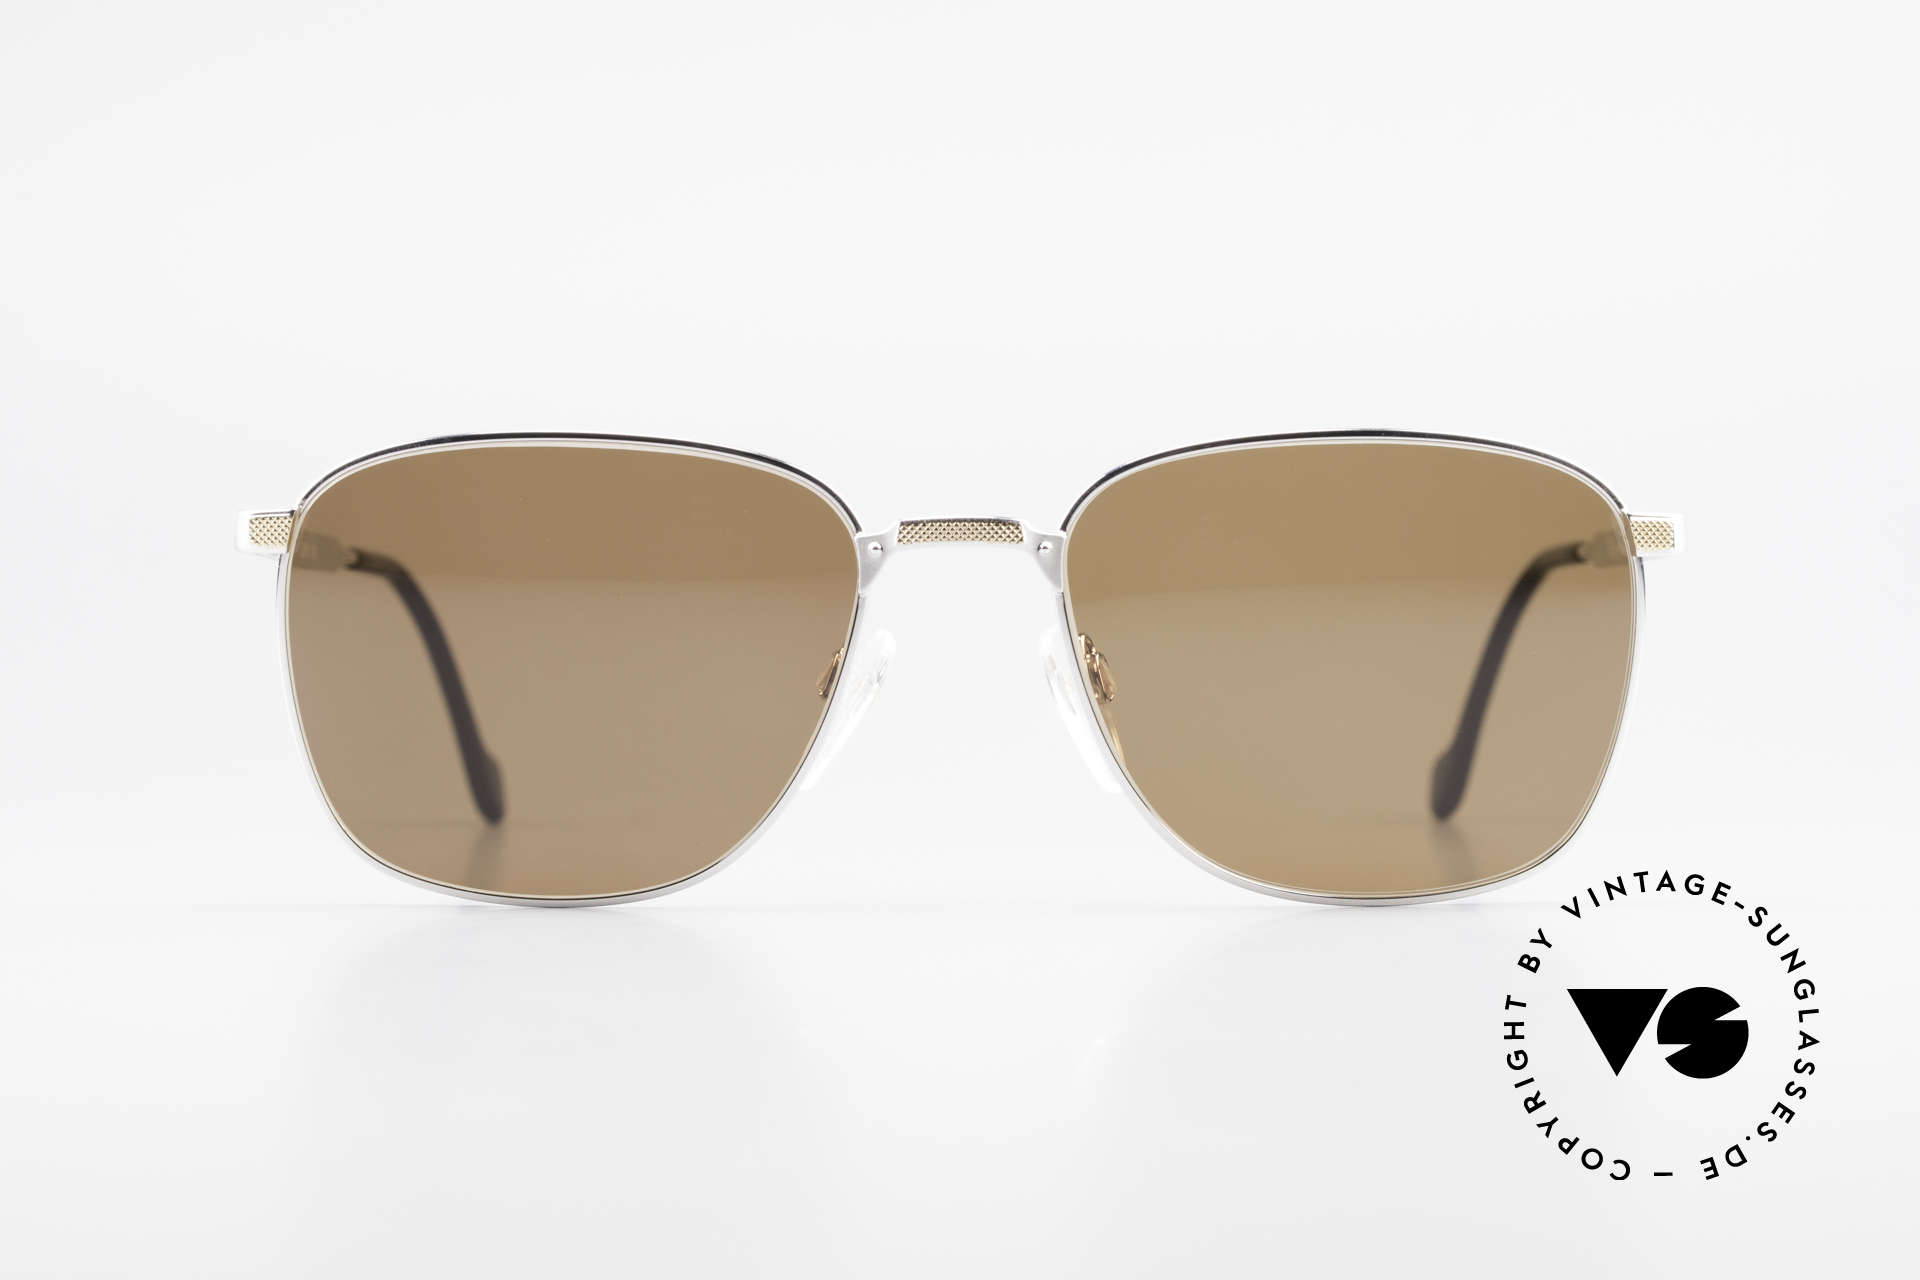 S.T. Dupont D048 Classic Luxury Shades 23kt, very exclusive S.T. DUPONT luxury shades, size 56°18, Made for Men